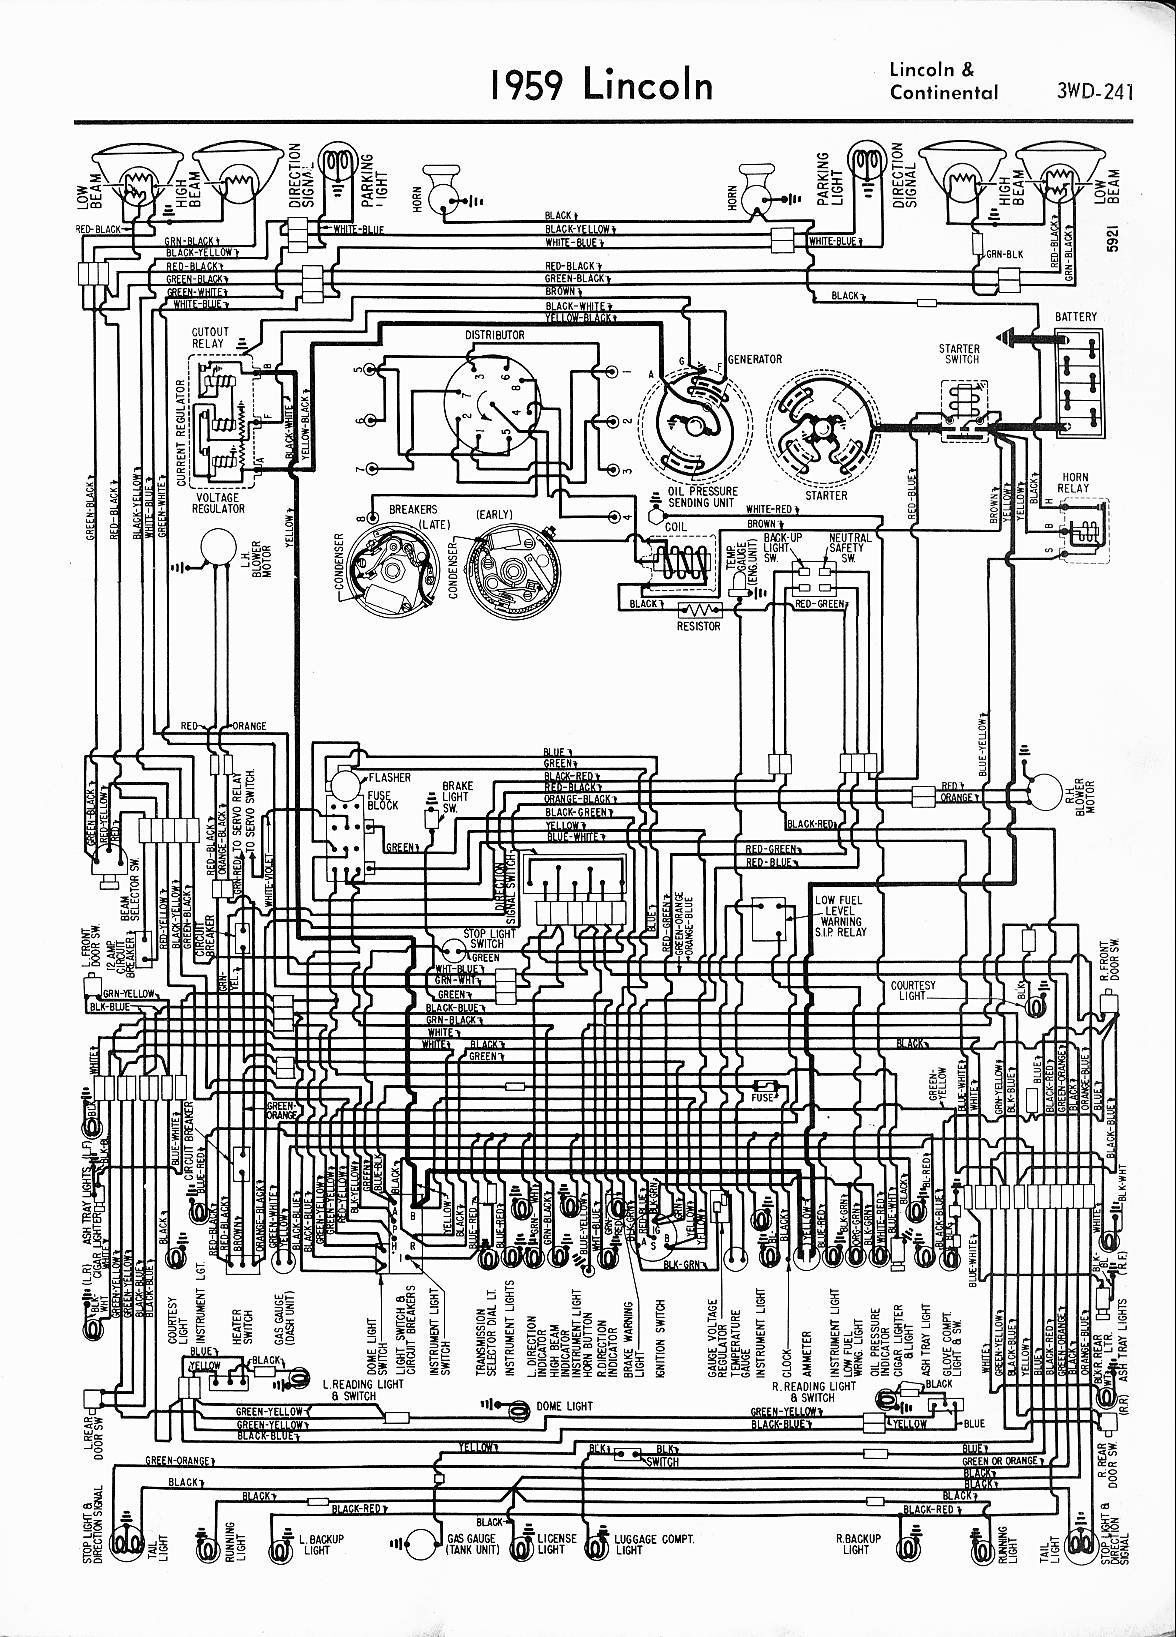 1978 dodge truck ignition wiring diagram gas golf cart lincoln diagrams 1957 1965 1959 continental